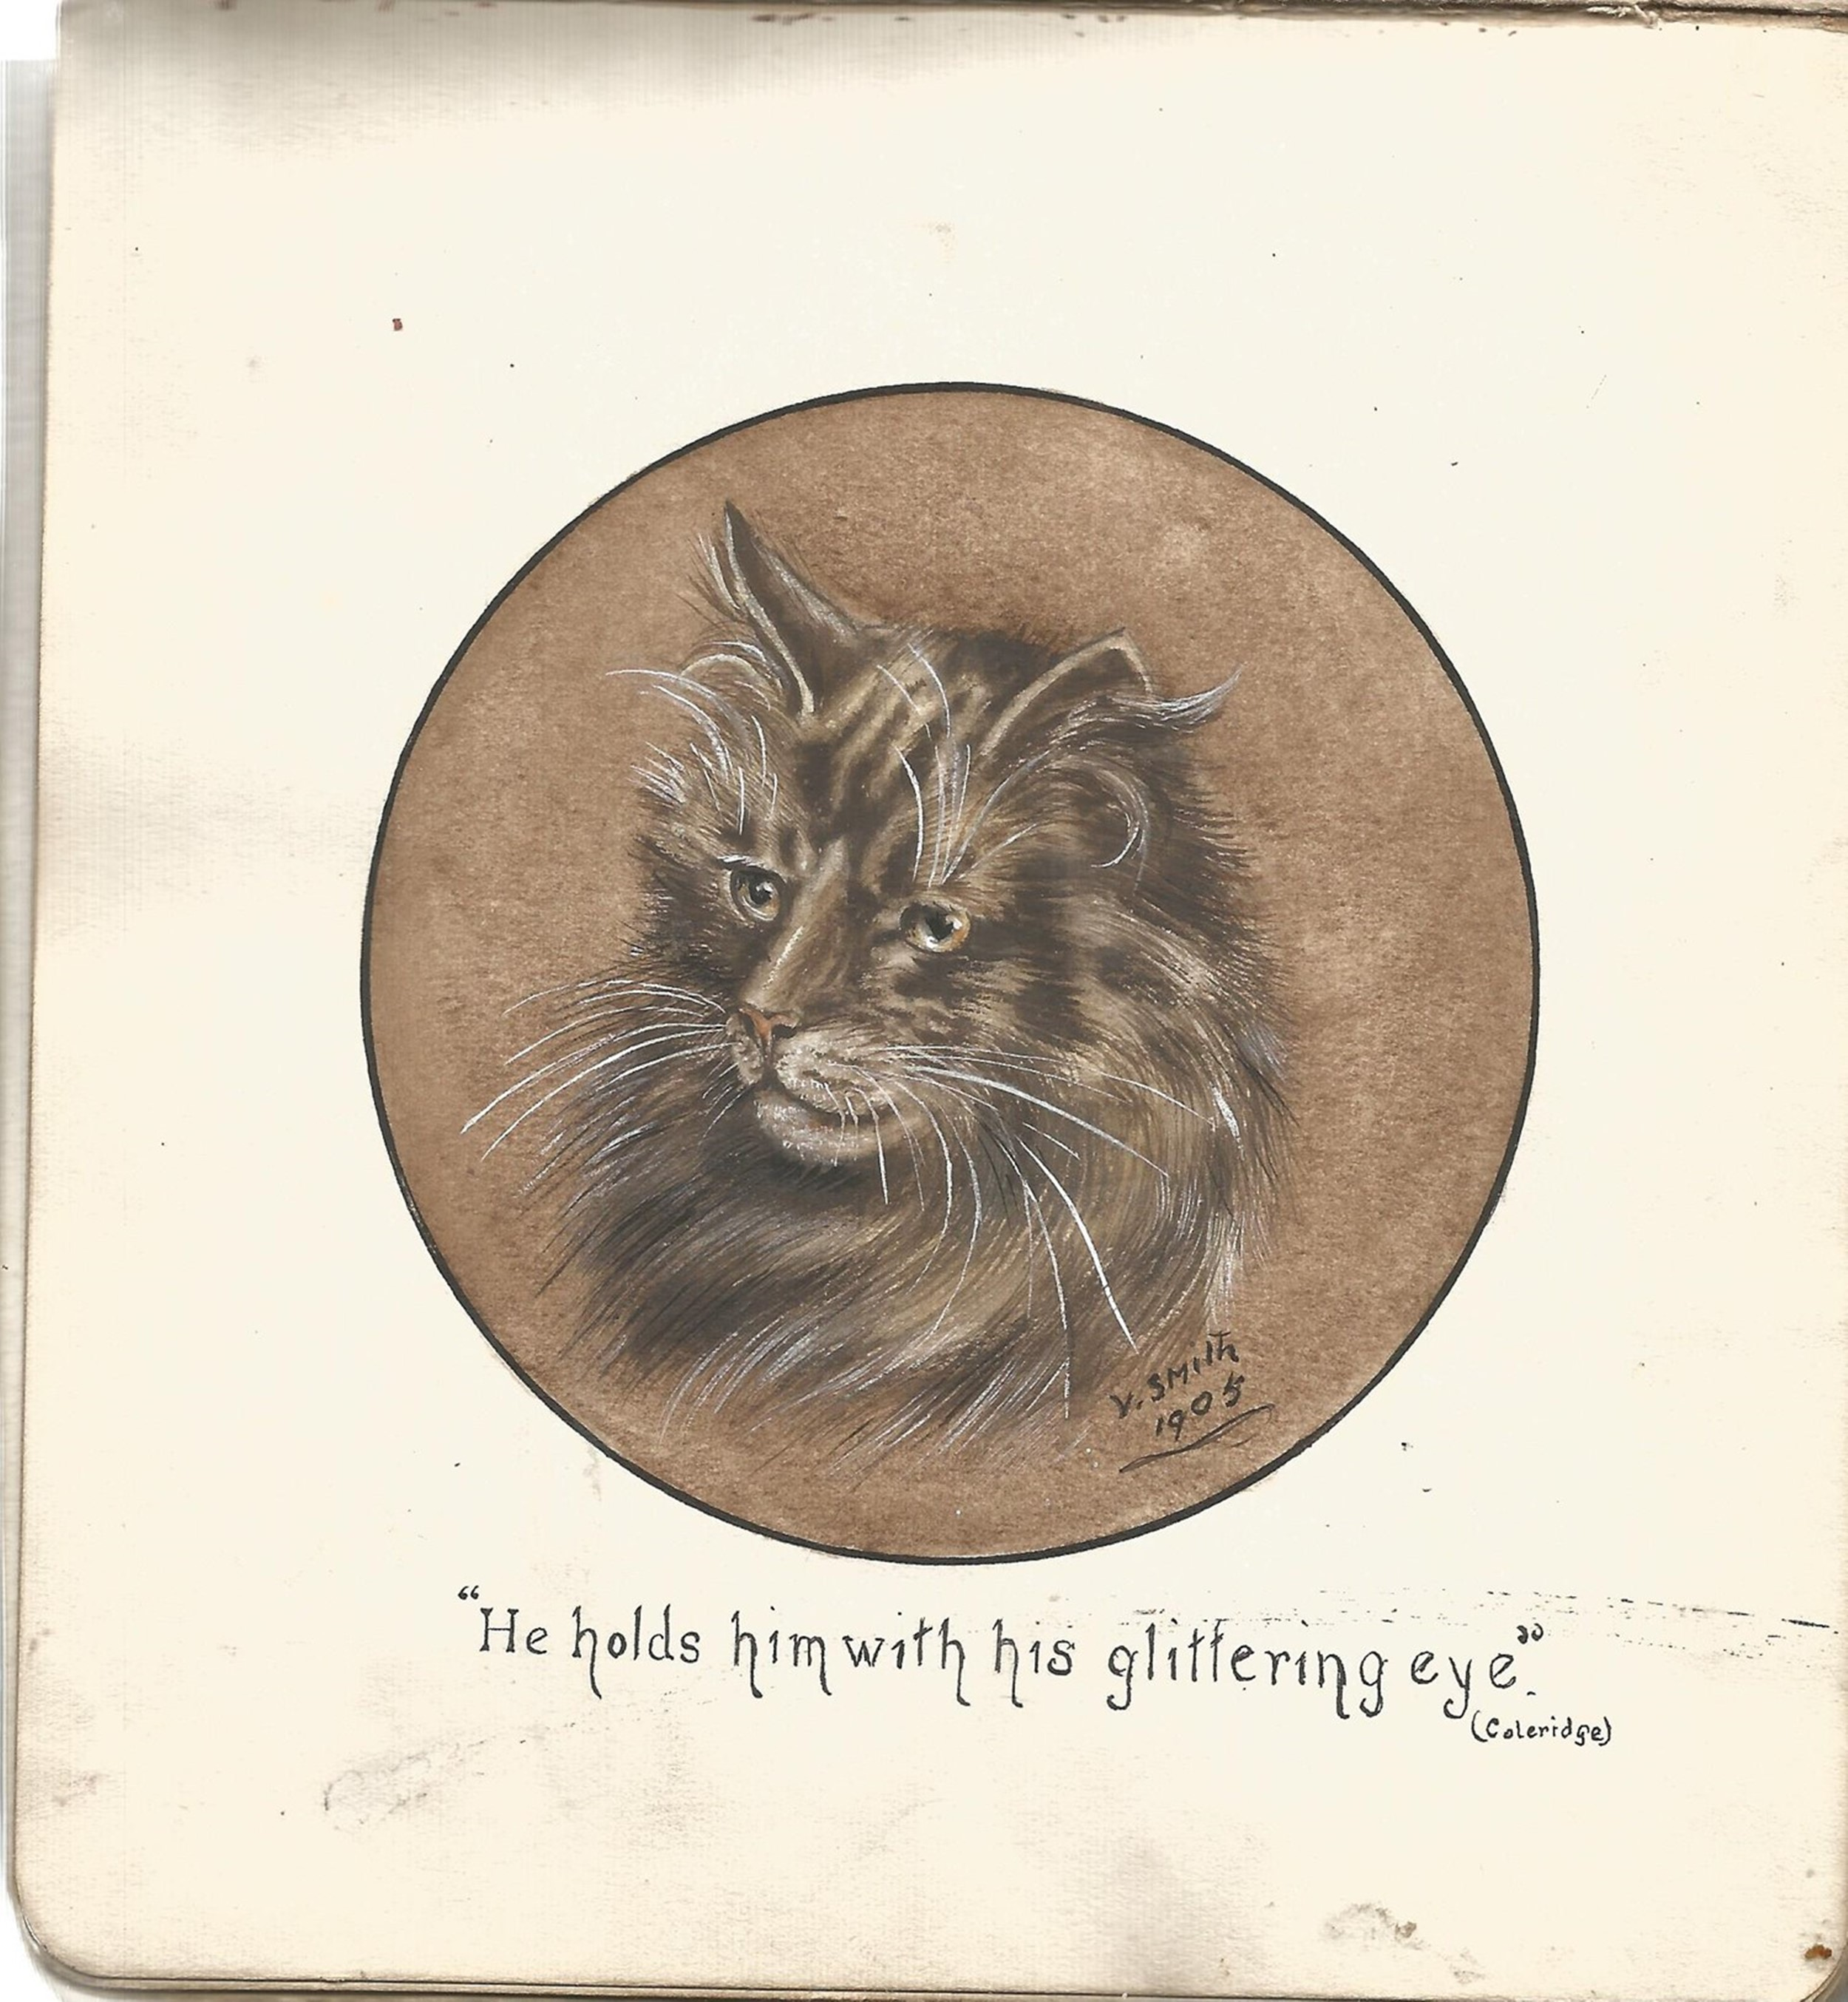 Autograph book collection includes over 20 vintage sketches, doddles and postcards may yield good - Image 4 of 4